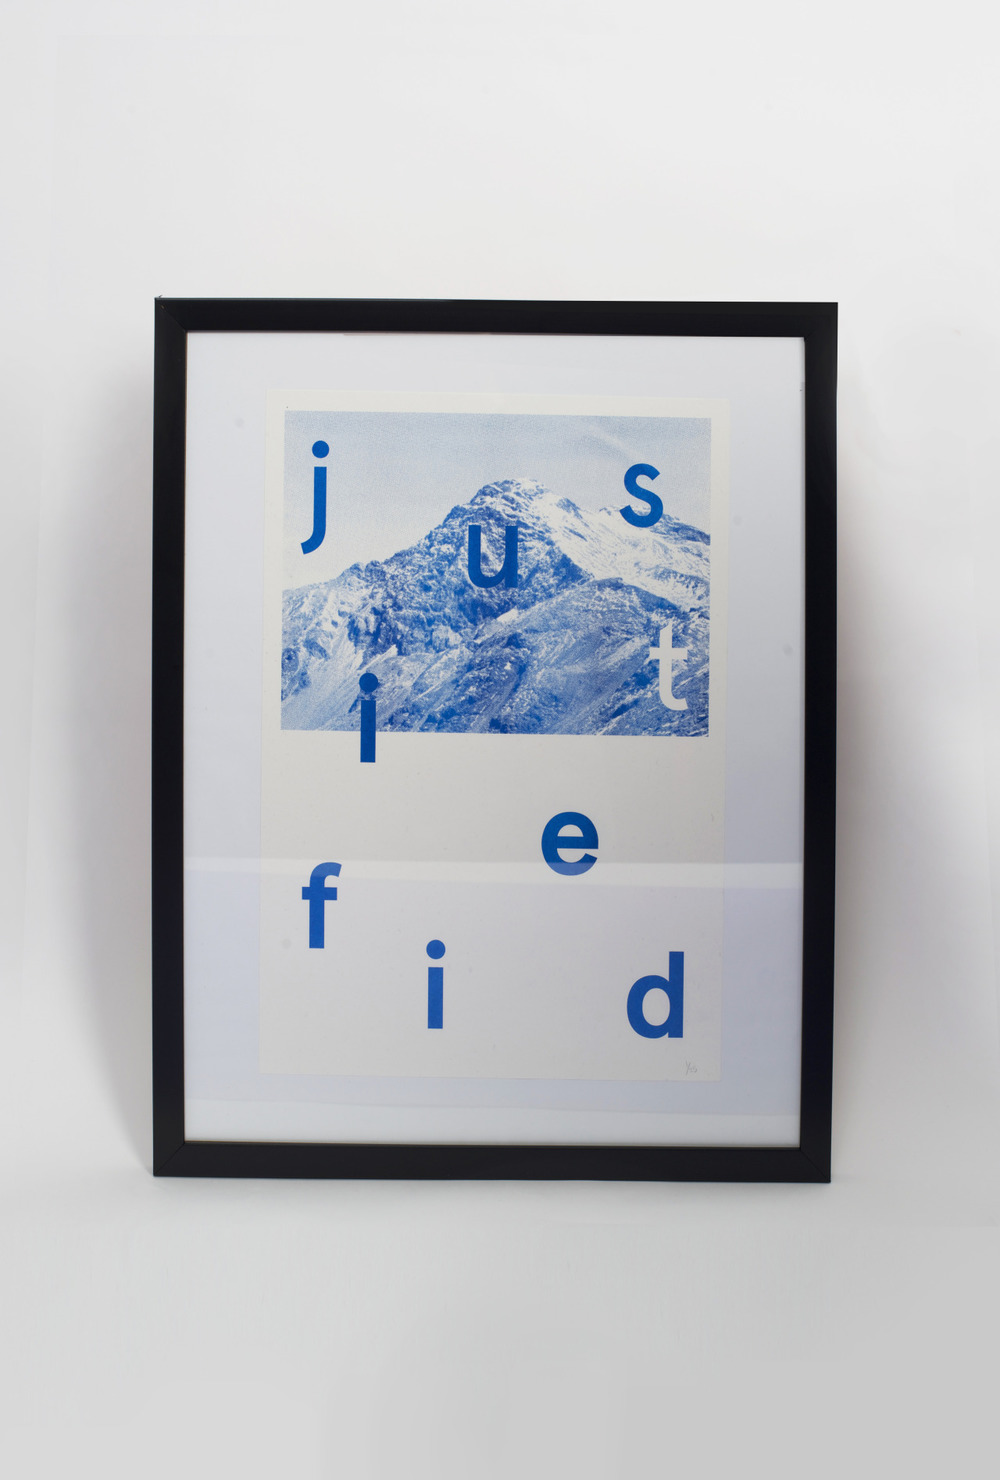 visualgraphic :      shop.justifiedmag.co.uk    A limited run of 25 Risograph prints printed on paper from Antails. This print has been framed (see other photo below), if you would like it with the frame then please get in contact.   Artist: Alexander Jesipow   For Justified No.2